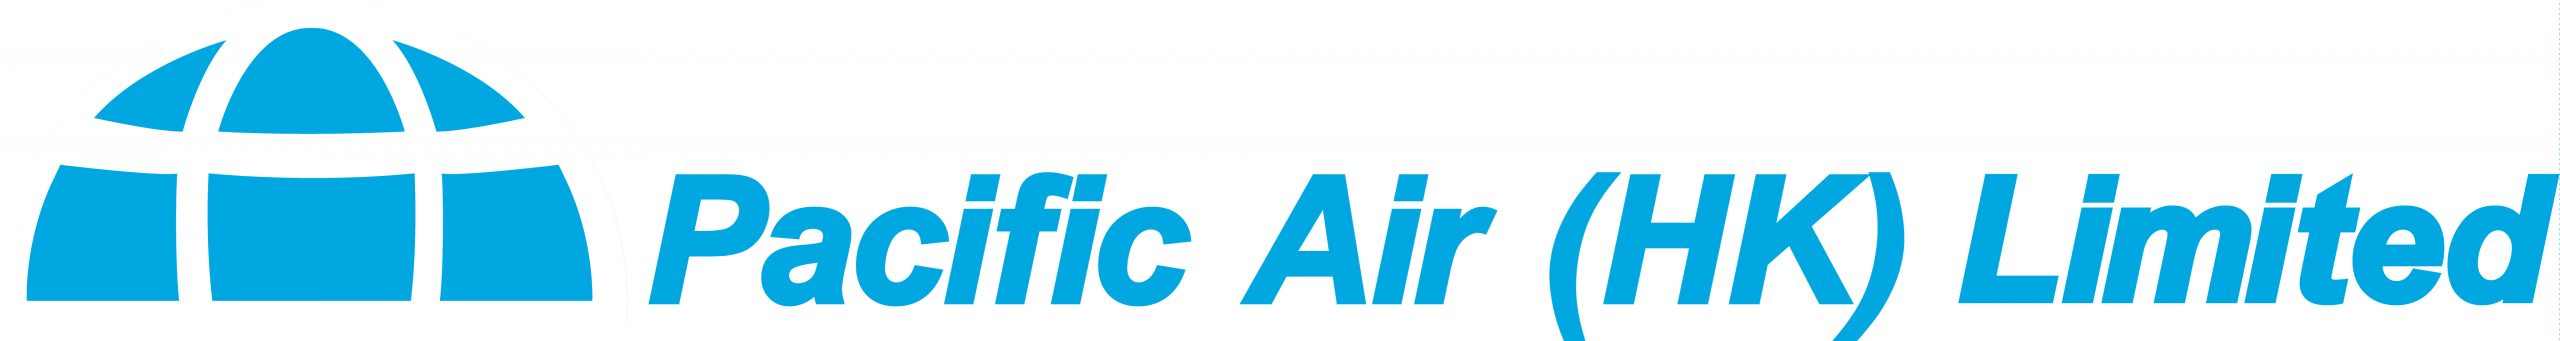 Pacific Air (HK) Limited